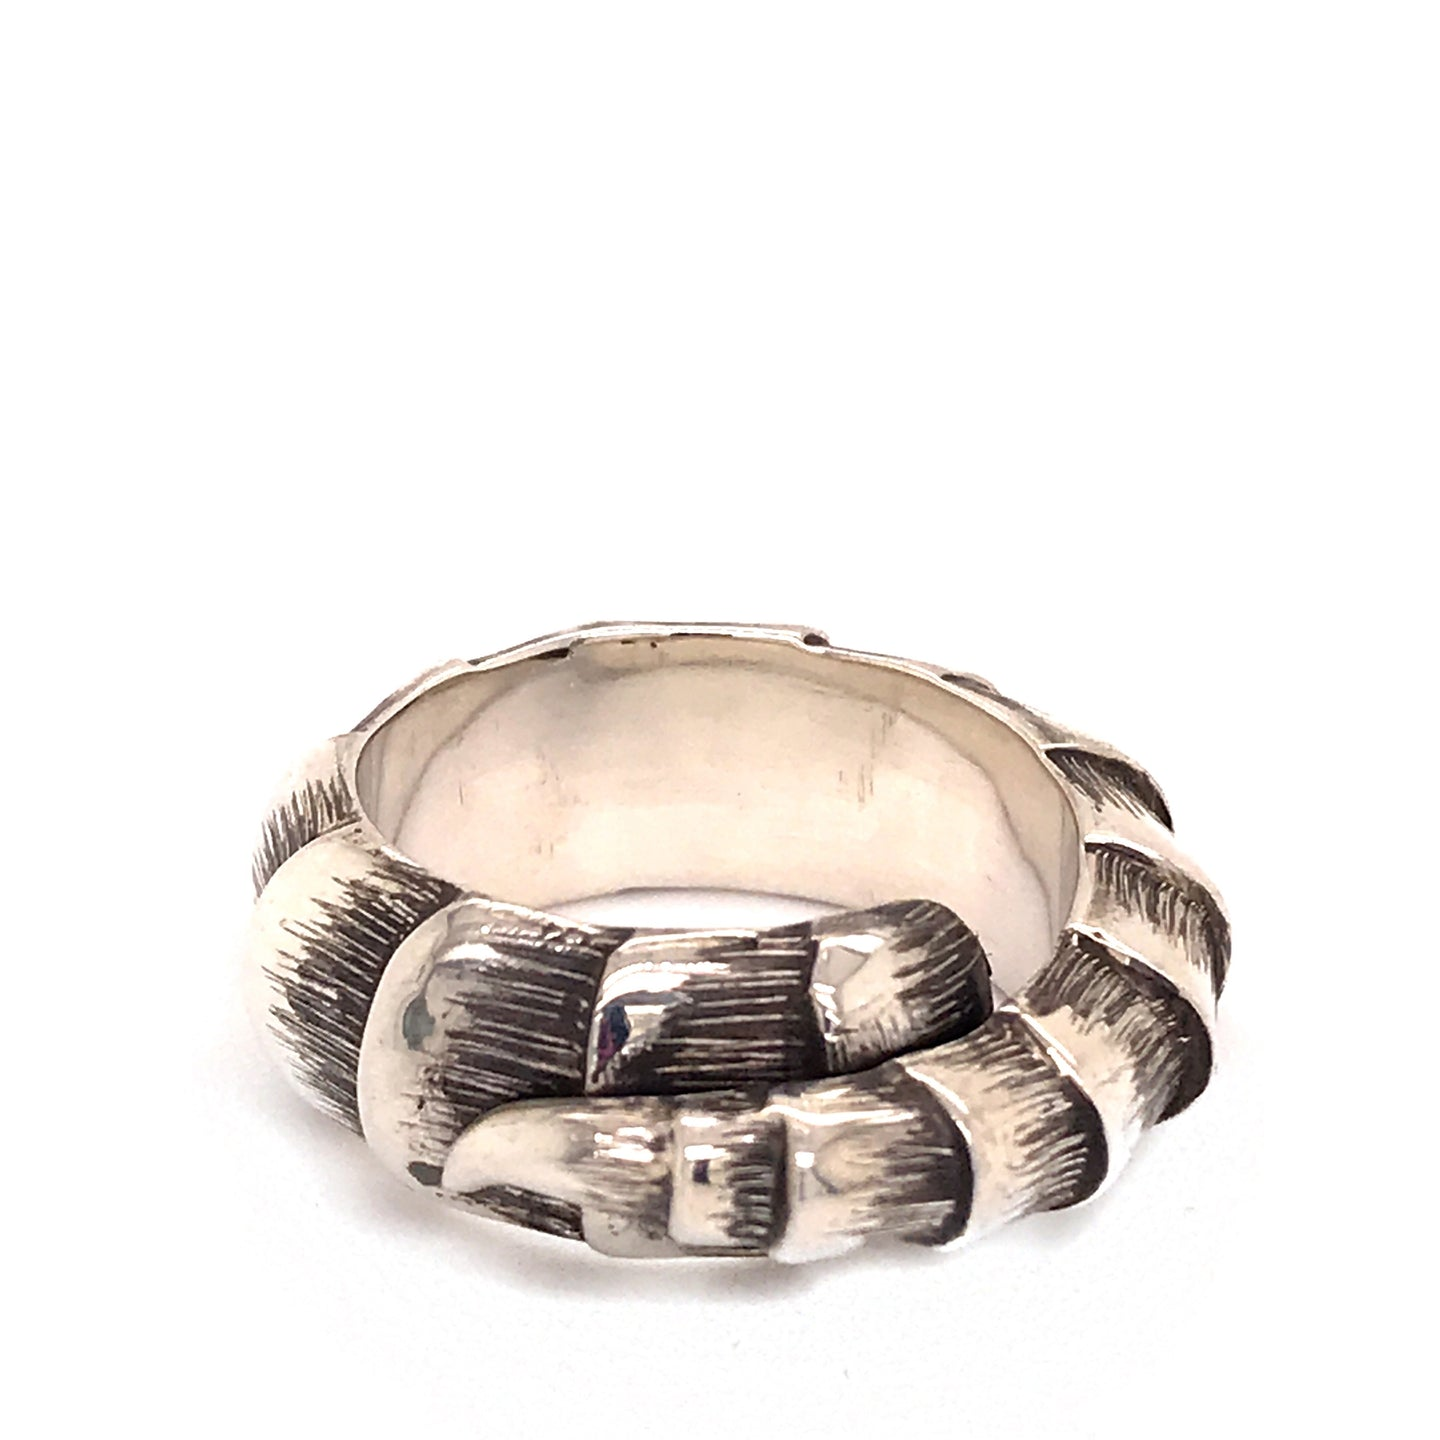 Mariella Pilato Scorpion Tail Ring